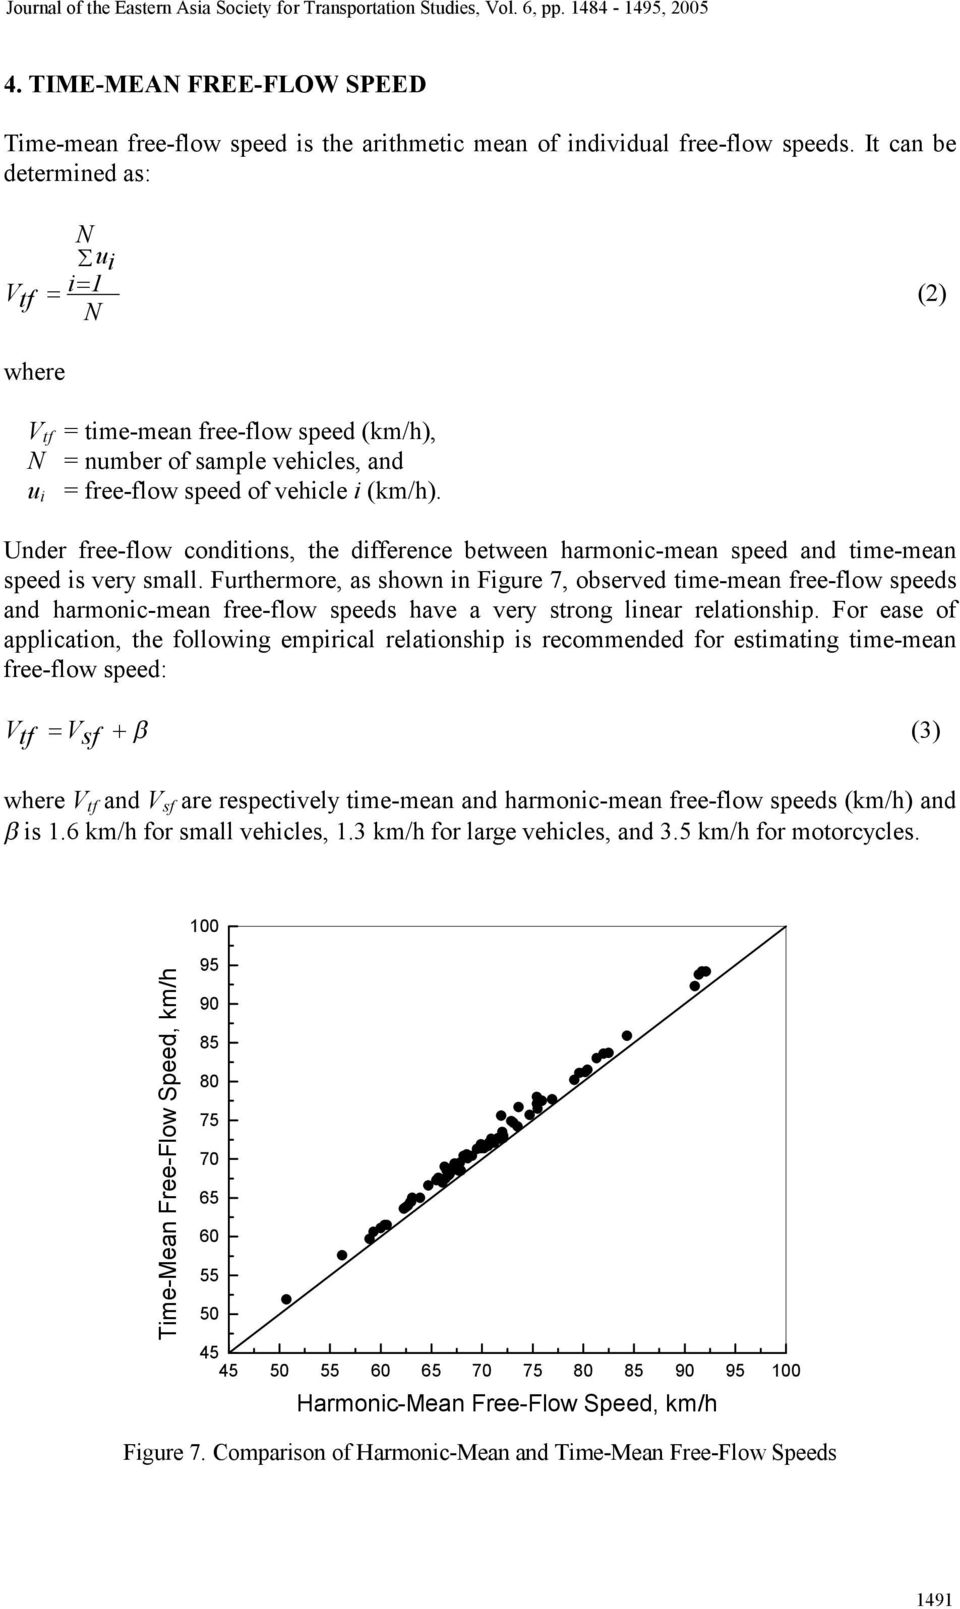 u i Under free-flow conditions, the difference between harmonic-mean speed and time-mean speed is very small.